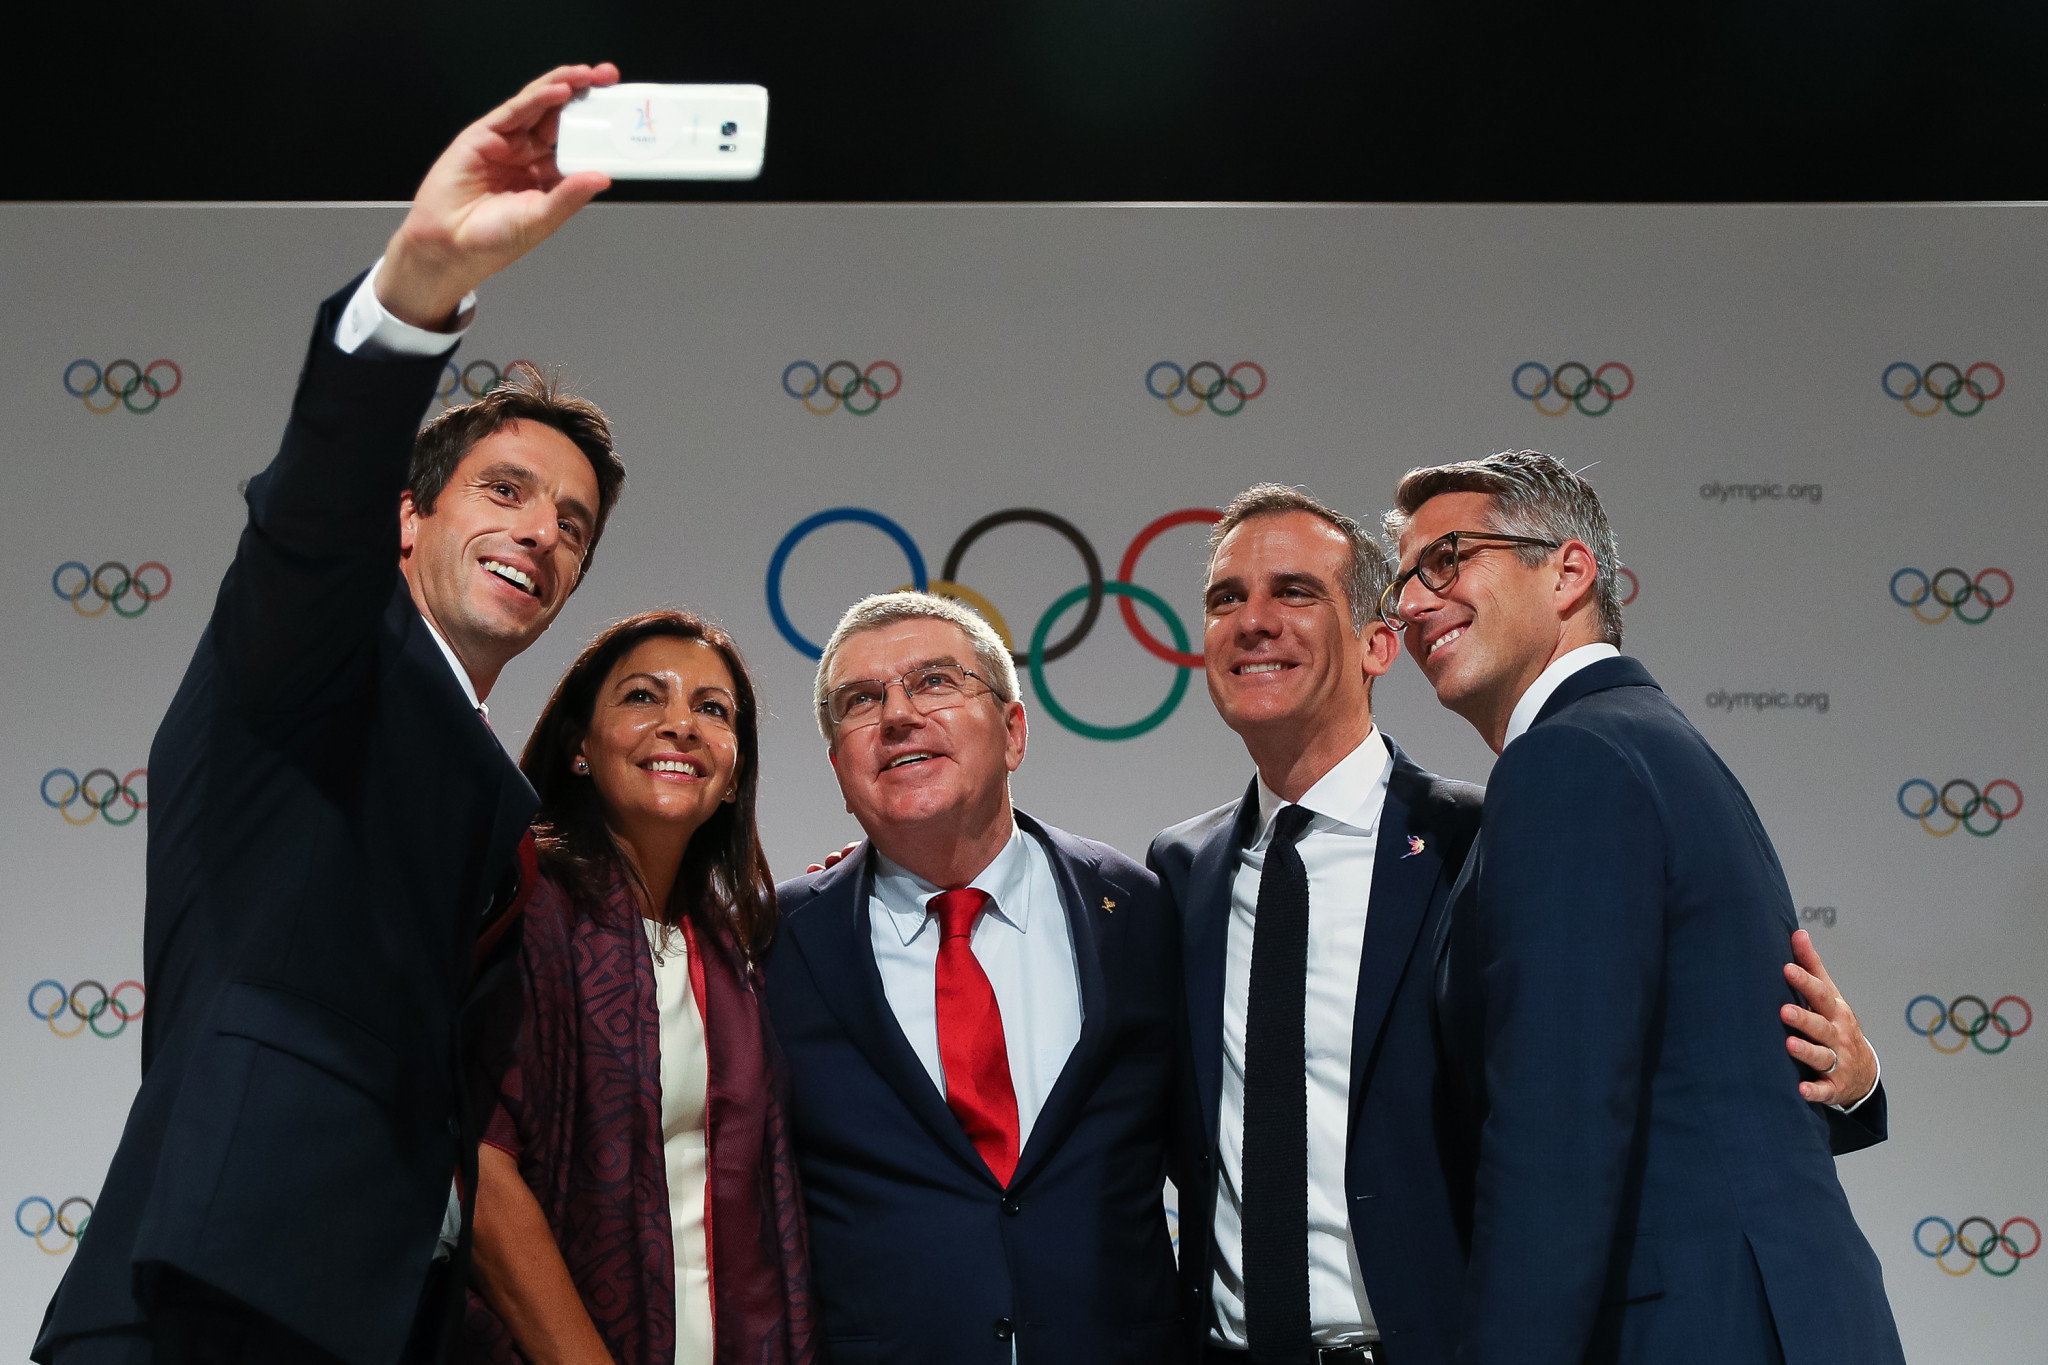 The hosts of the 2024 and 2028 Summer Olympics, Paris and Los Angeles respectively, were jointly announced at the 131st IOC Session in Lima ©Getty Images